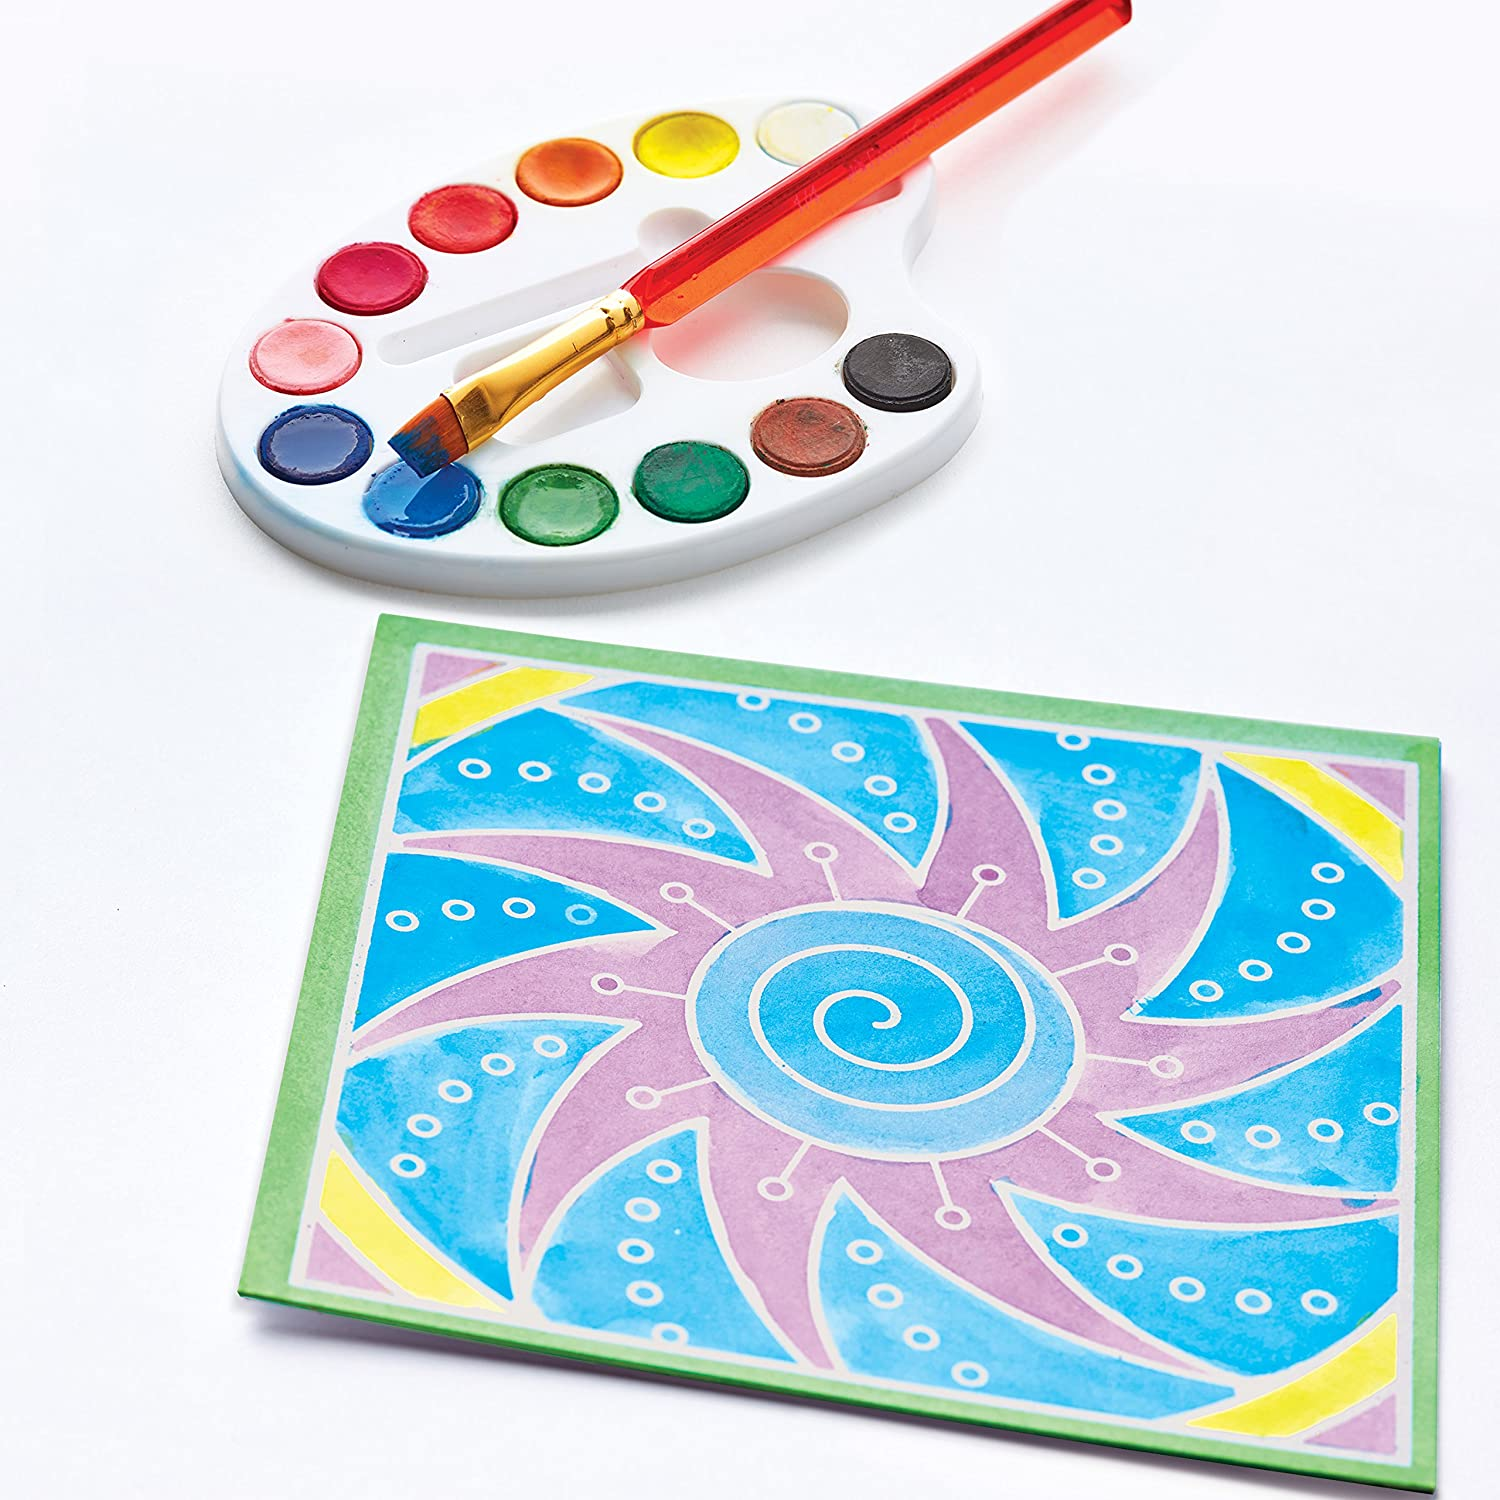 Faber-Castell 3D Sand Painting Textured Sand Art Activity Kit for Kids